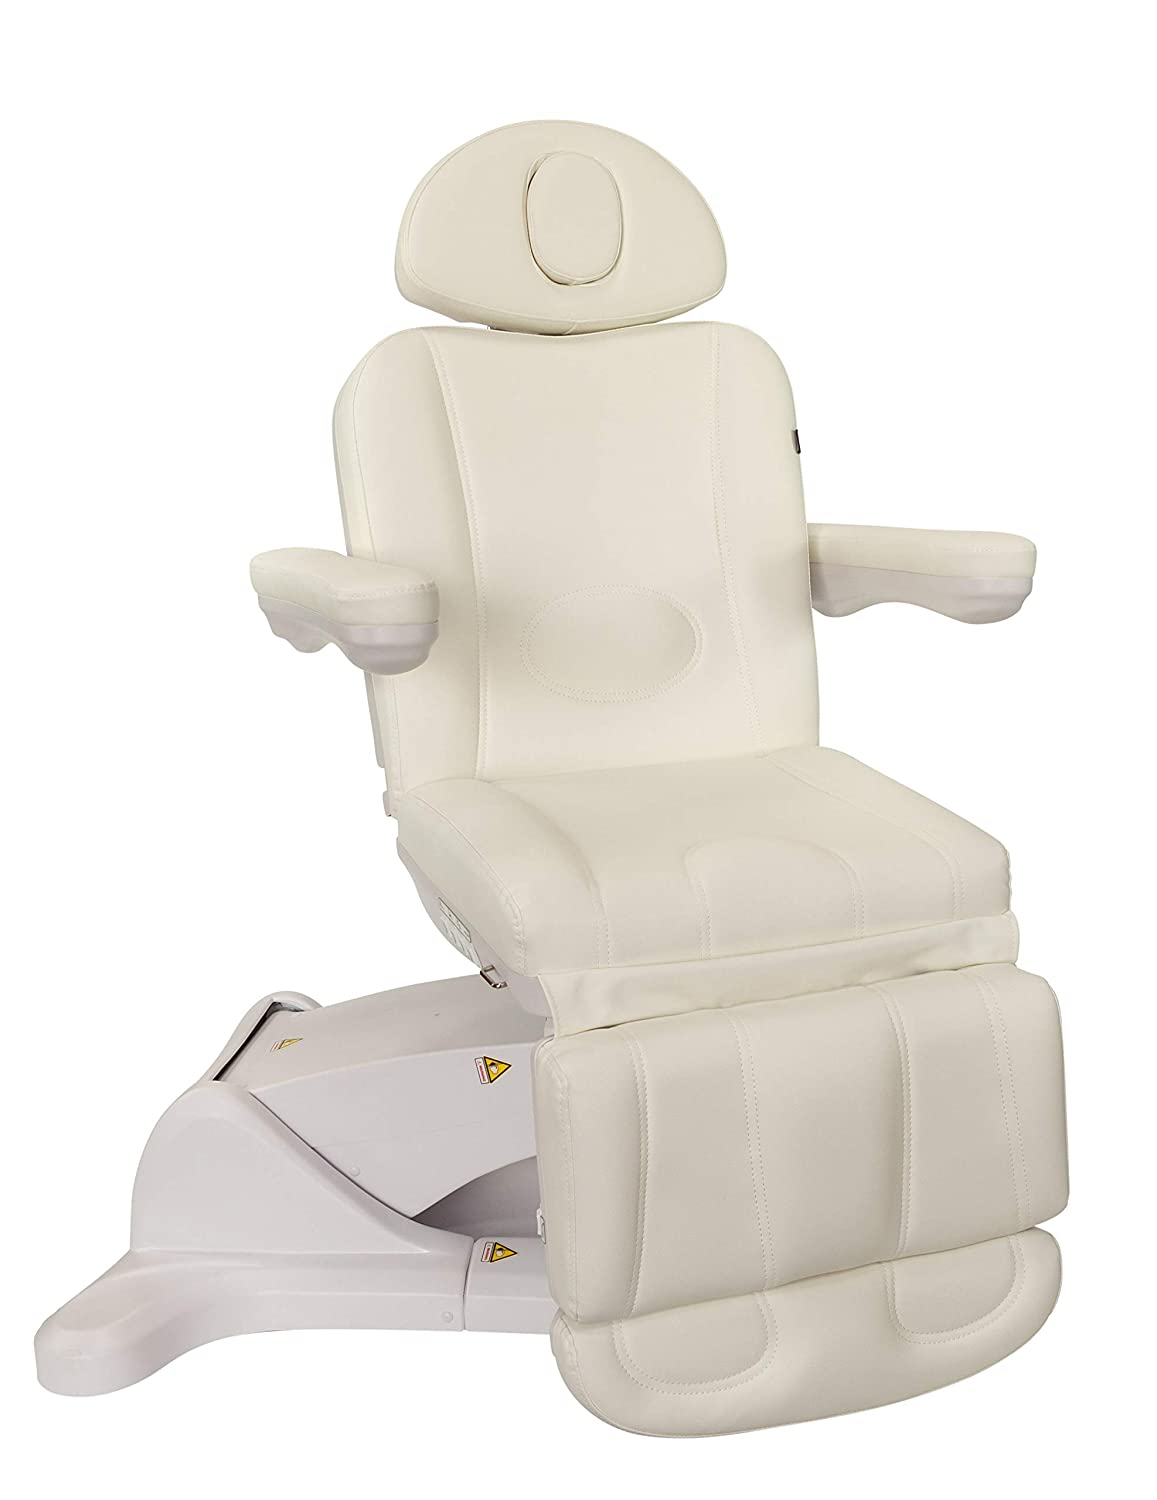 Medical Spa Facial Bed Exam Dermatology and Procedure Chair w Rotation – All Electric White